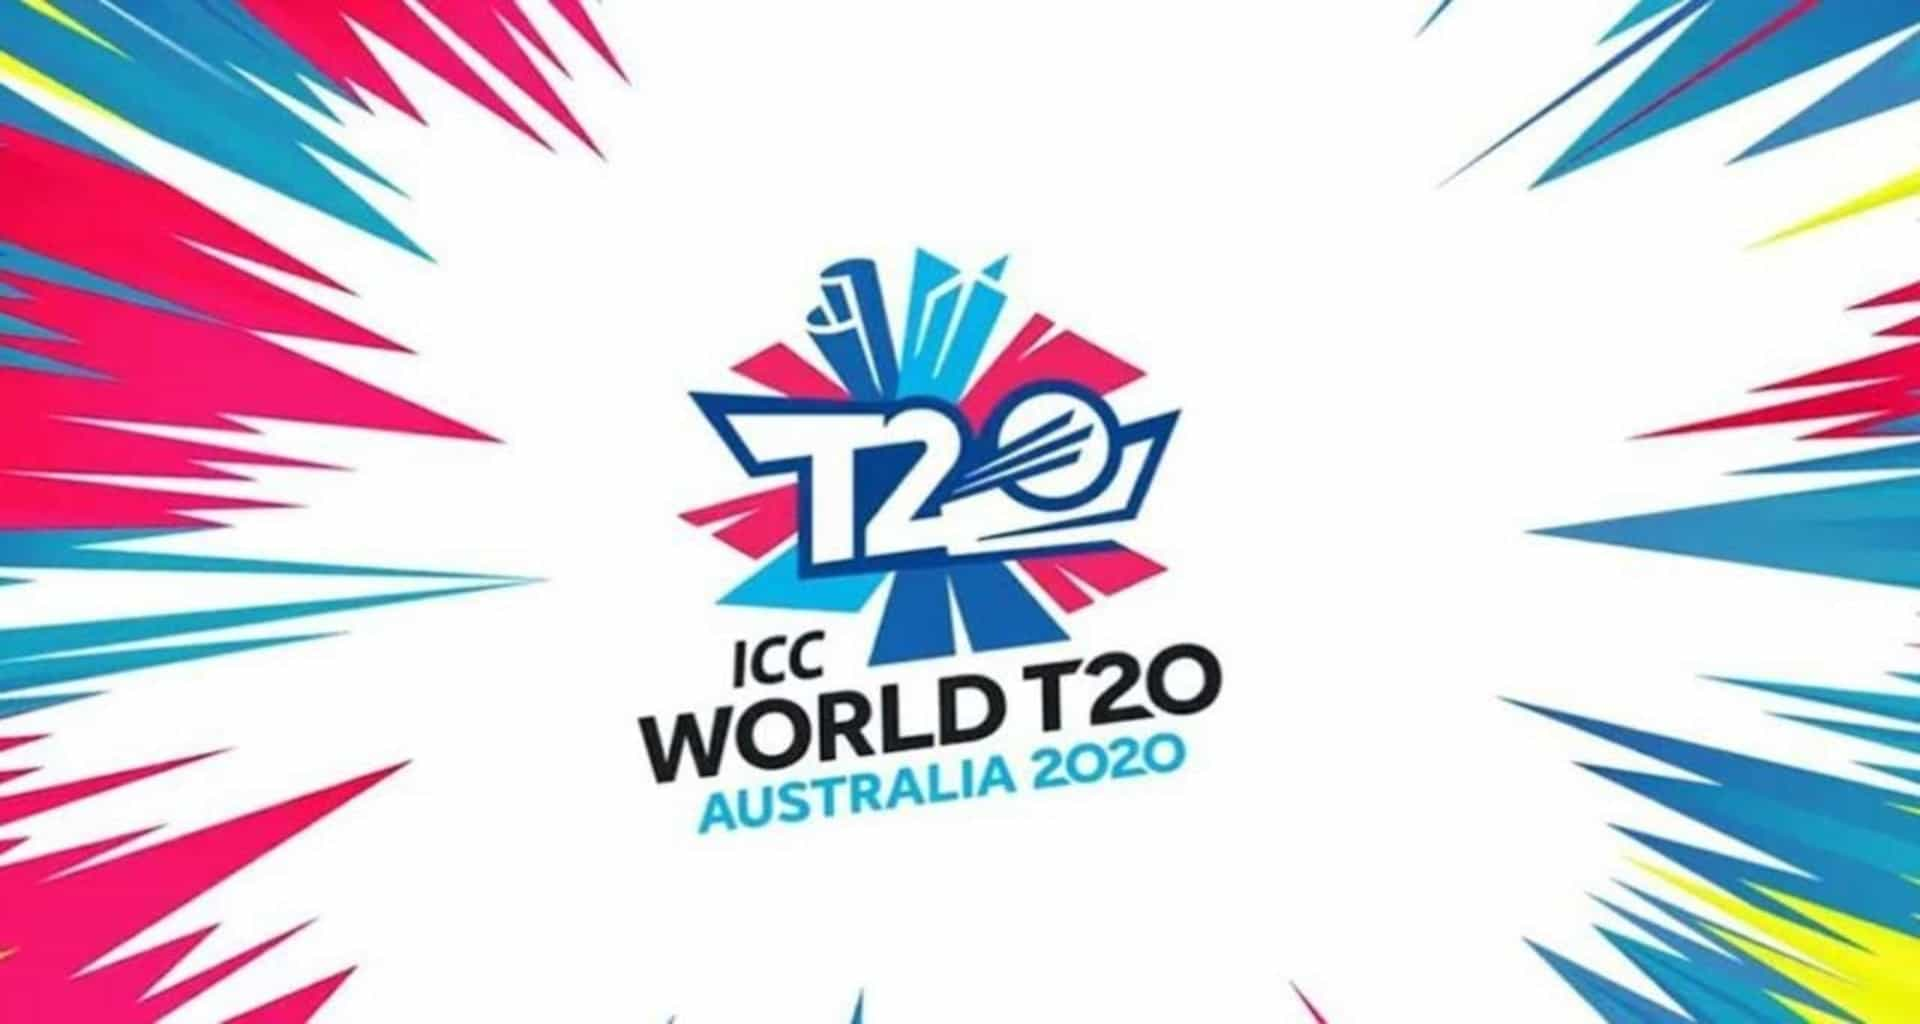 ICC Meeting: Decision delayed on ICC T20 World Cup